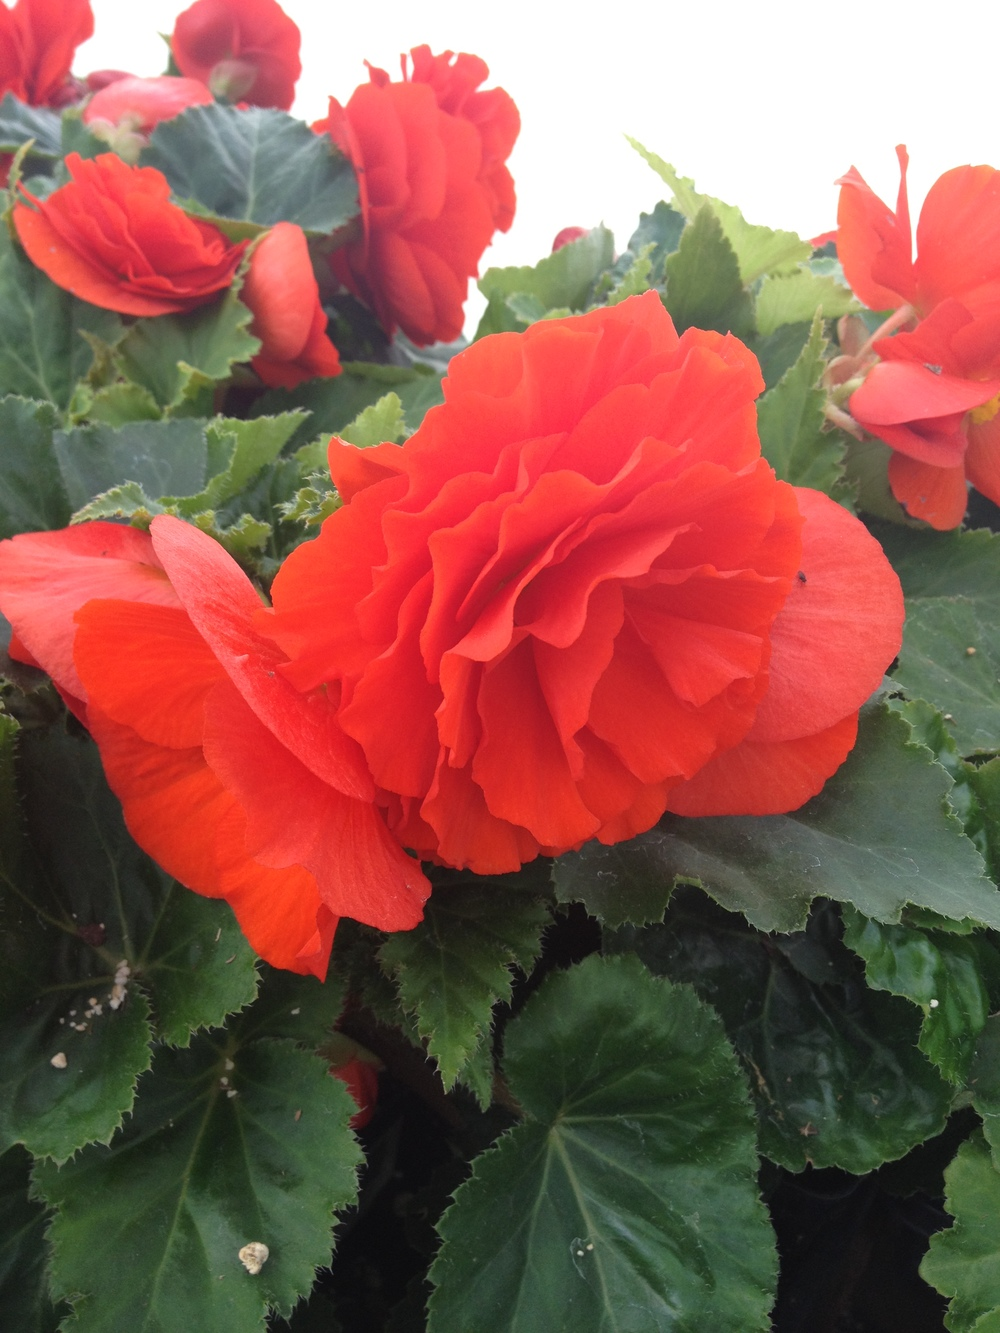 "Non-Stop Begonias are a very popular spring item at Schlegel Greenhouse and with their large blooms and lush full foliage it's easy to see why. A consistent performer during the spring it is sure to bring lots of color to your spring display. Non-stop begonias are featured in 3 sizes which are 4.5"" pots, 10"" hanging baskets, and 16"" grapevine baskets."